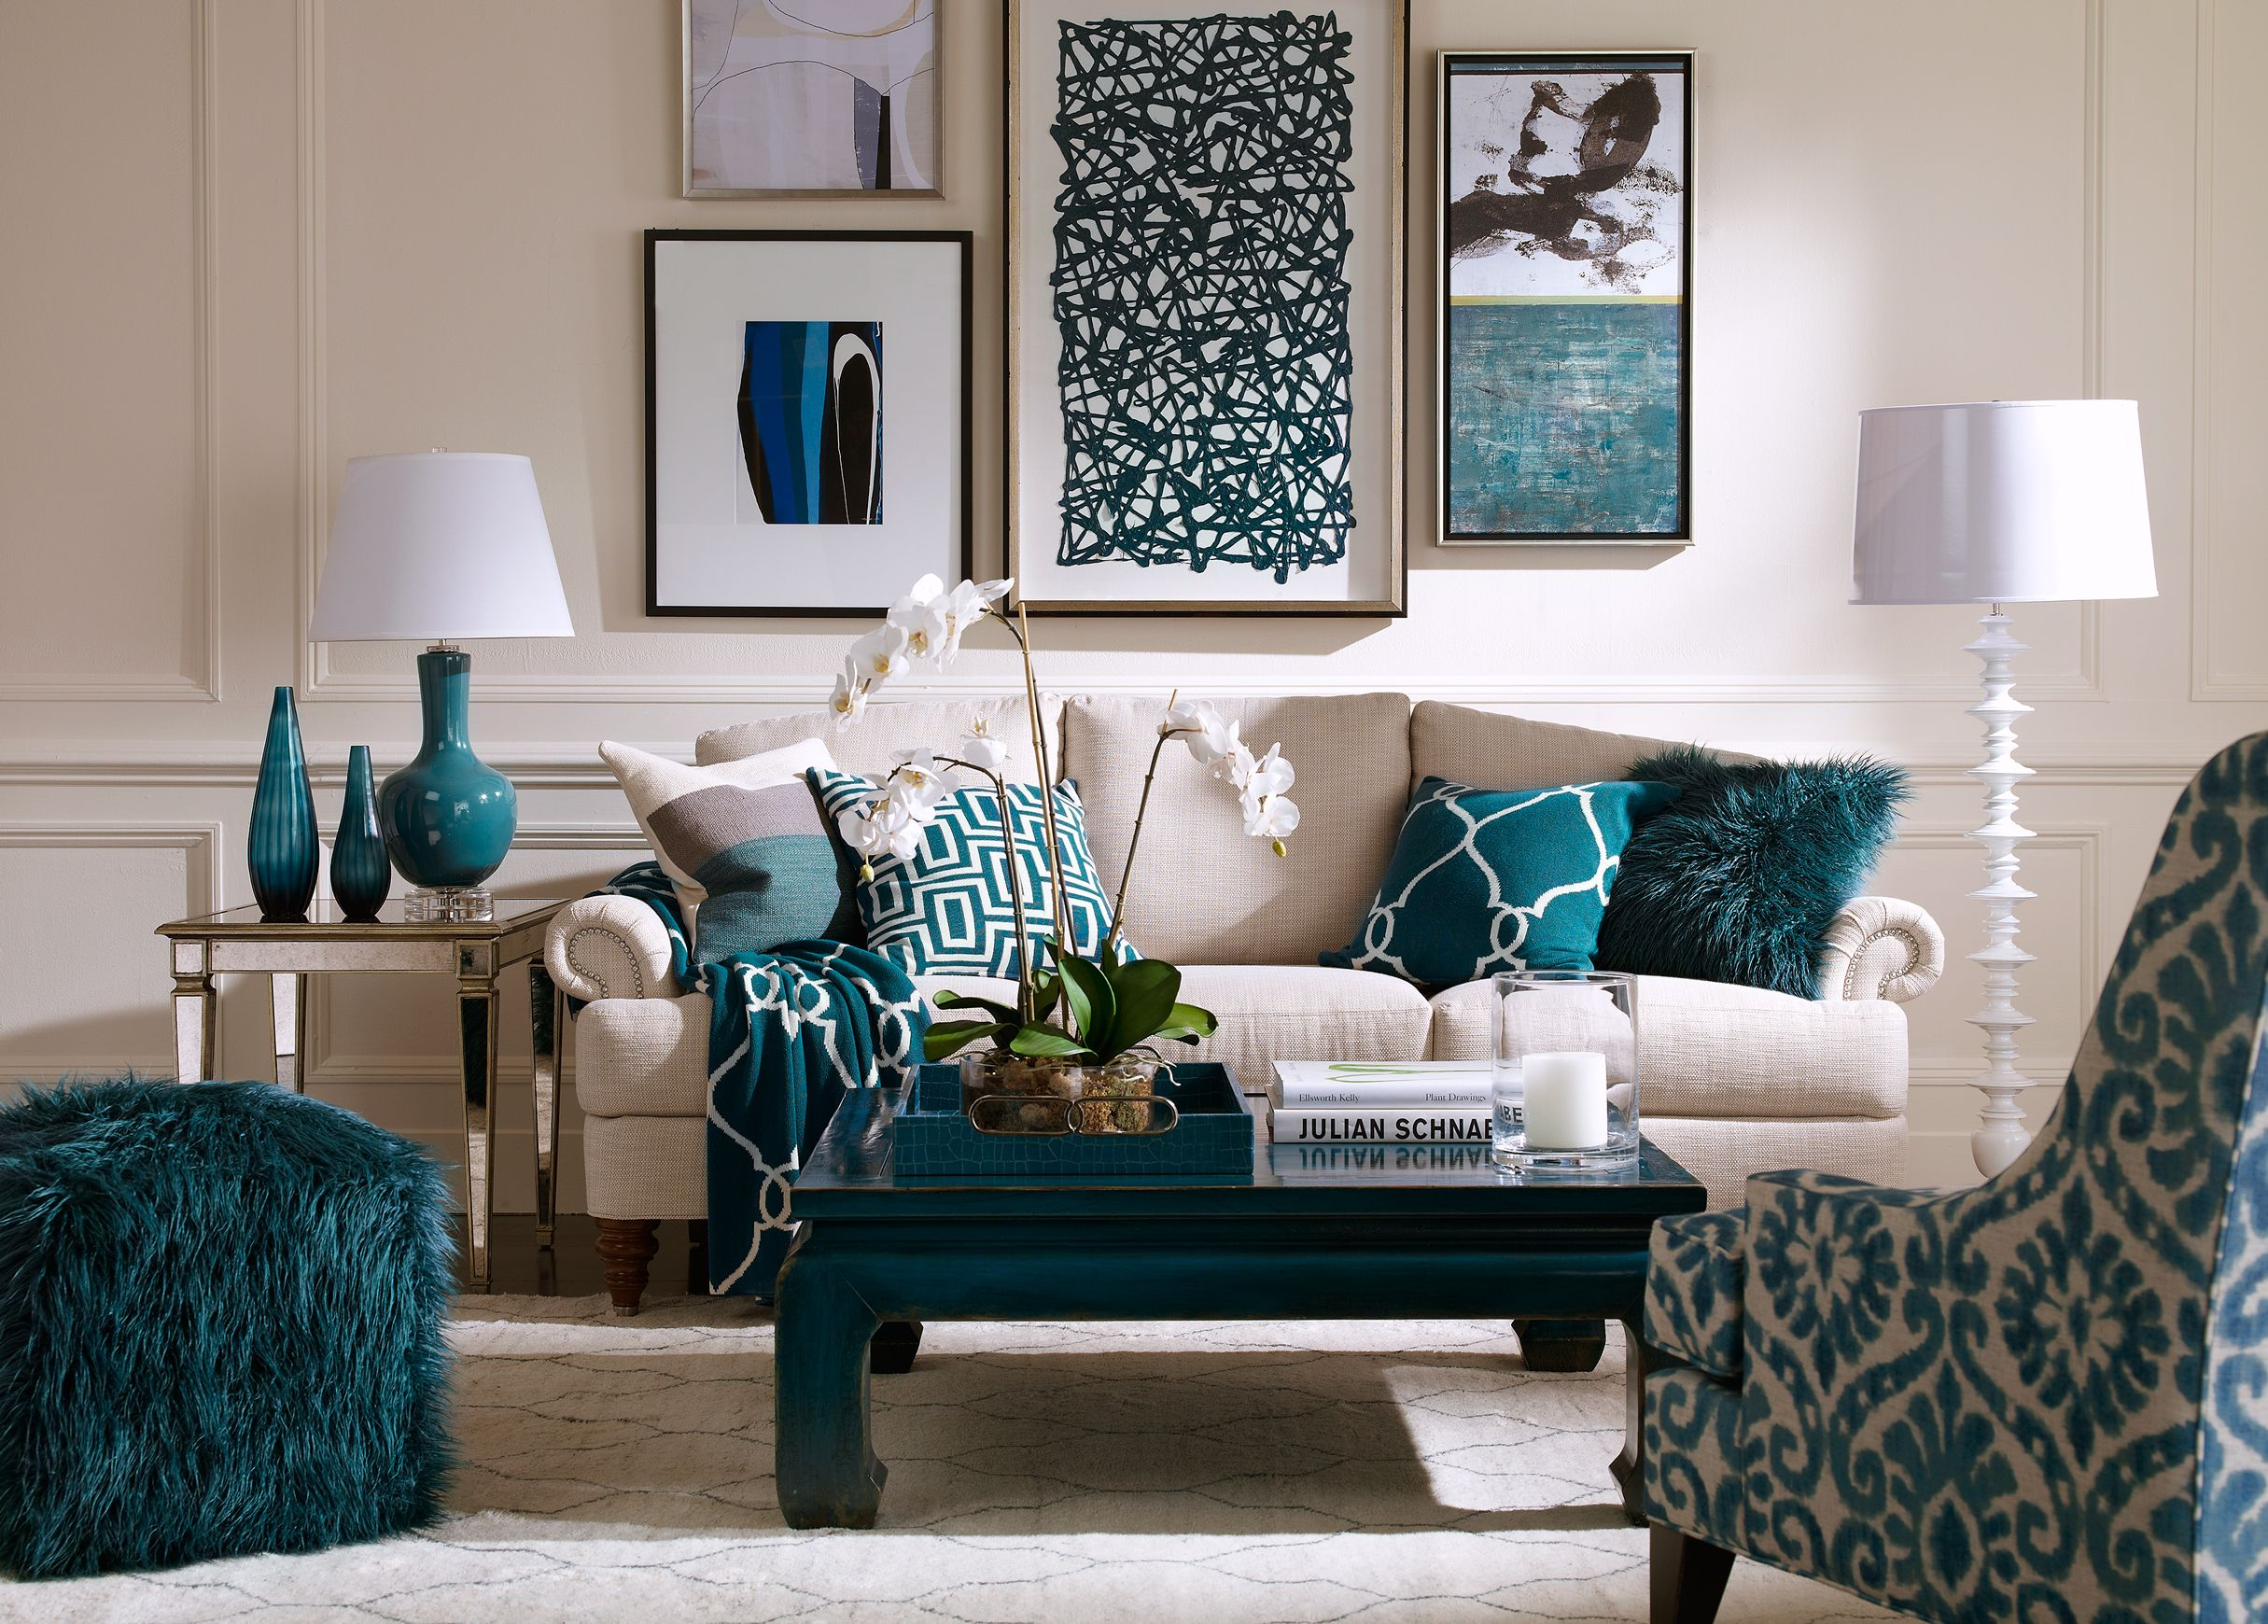 Turquoise dining room ideas turquoise rooms turquoise living room accessories using turquoise in decorating decorating with turquoise accents